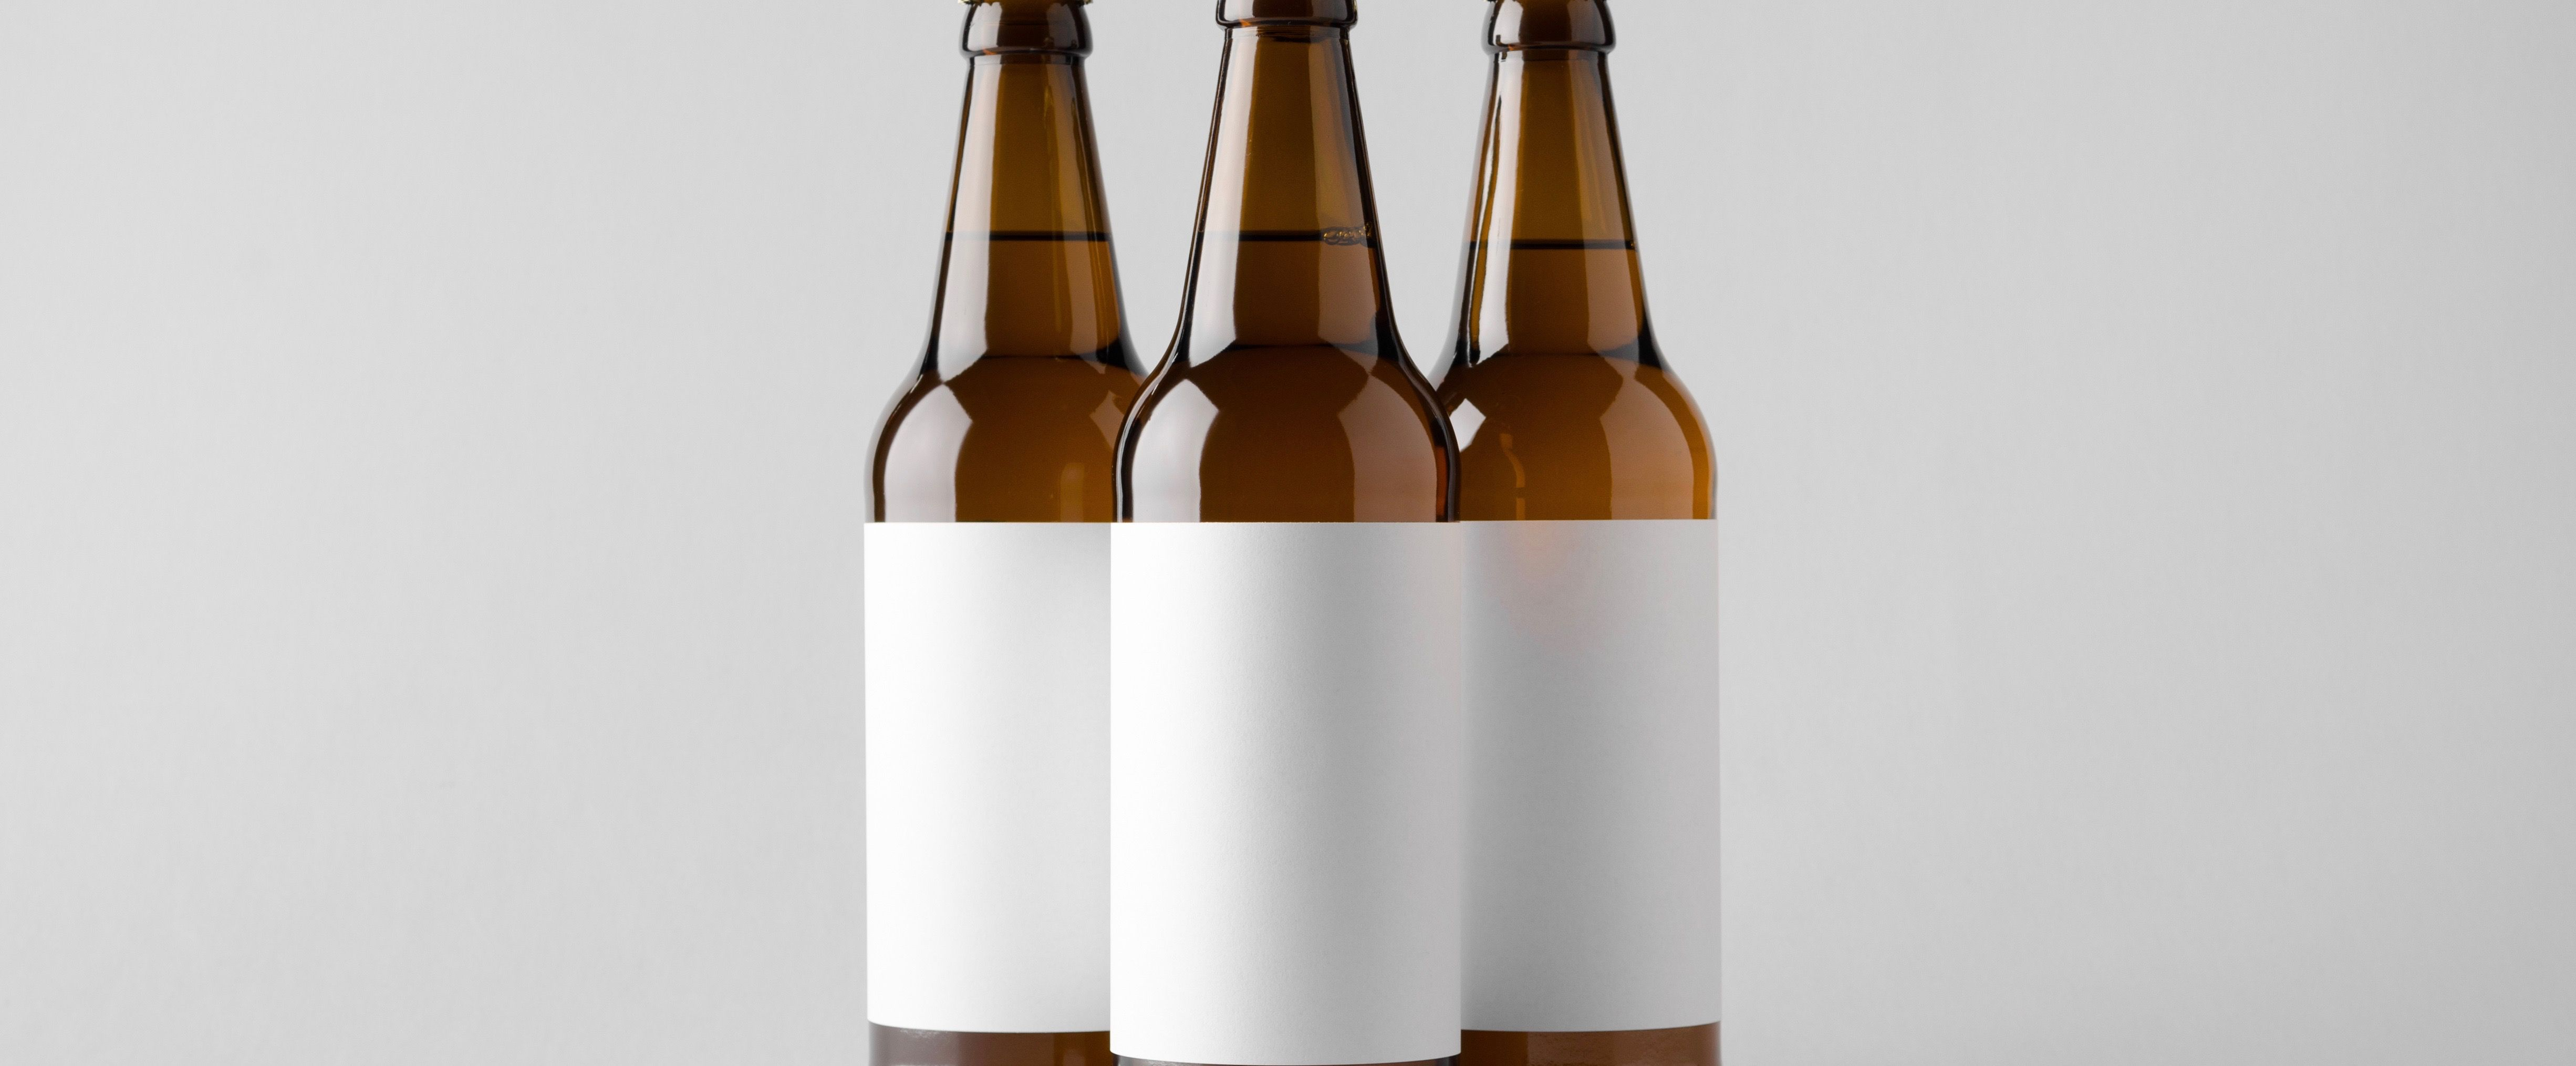 The 14 Coolest Beer Label Designs You've Ever Seen